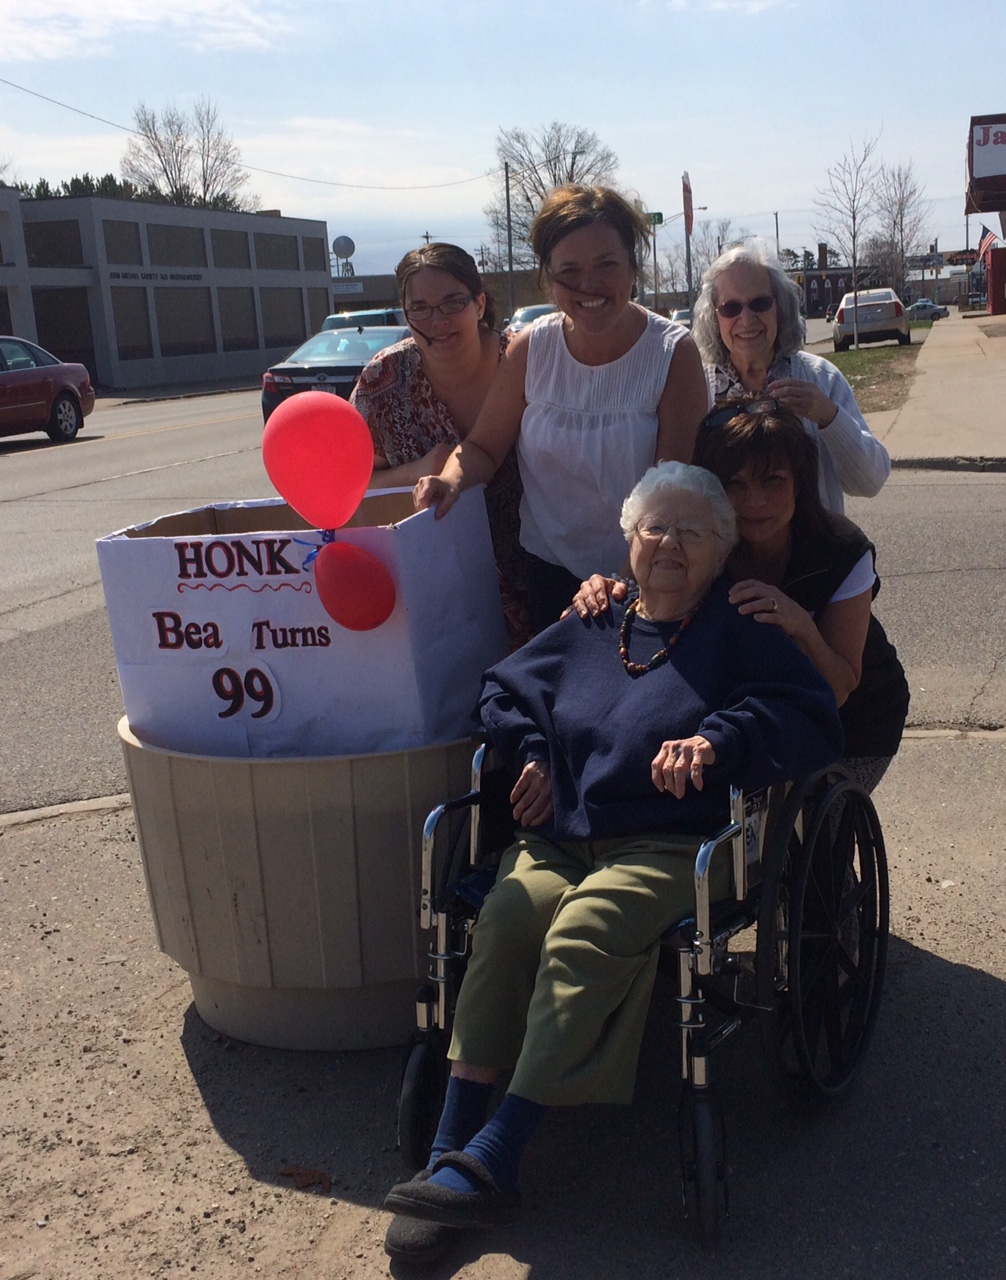 Bea turns 99!